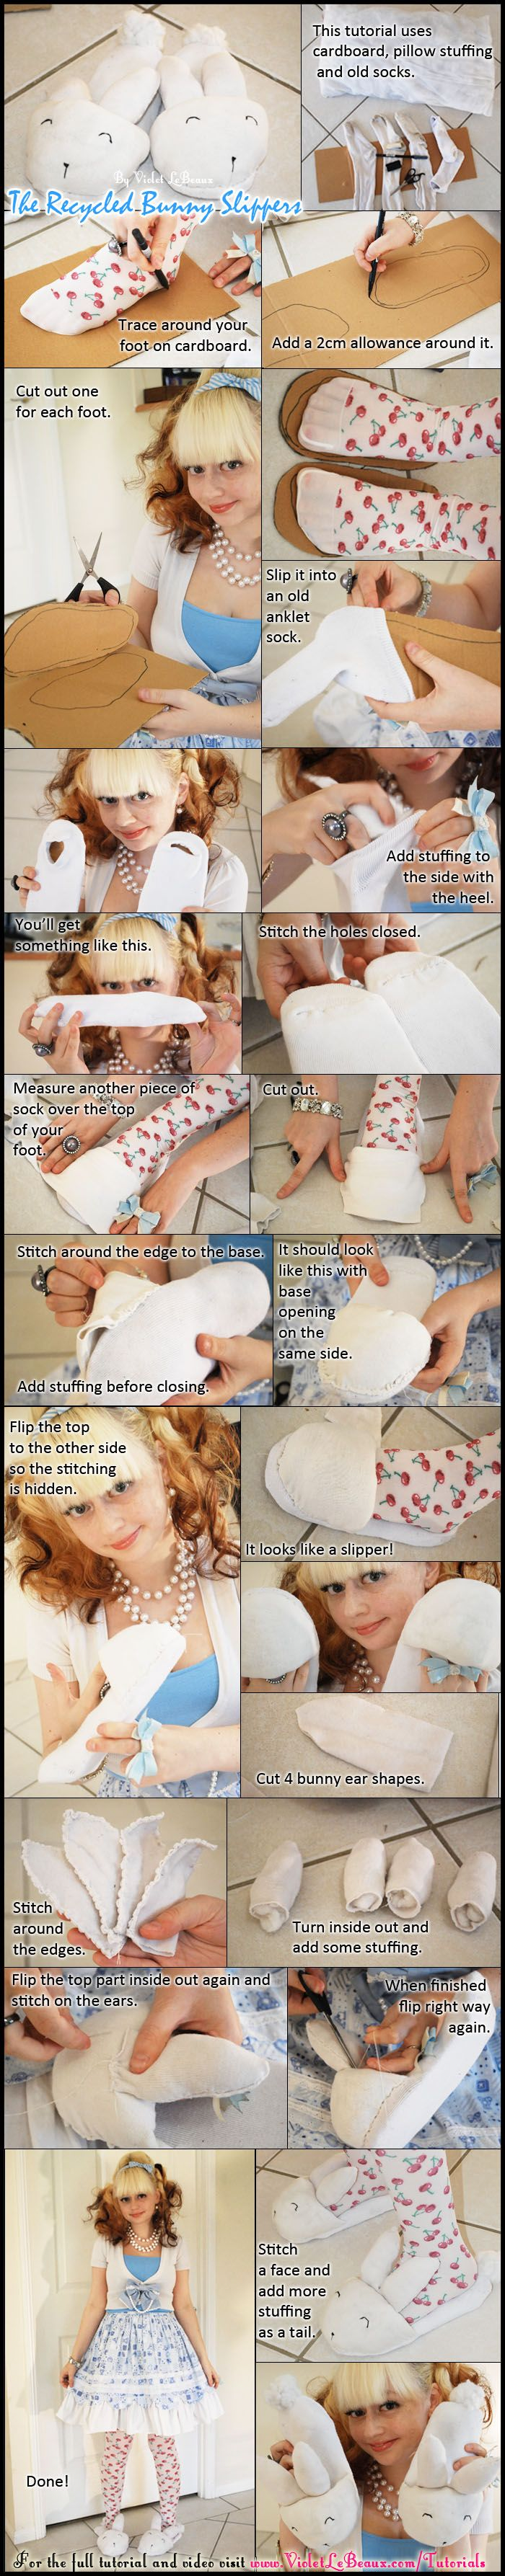 A simple tutorial on how to make bunny slippers out of old socks and pillows. My full old original tutorial over here: http://www.violetlebeaux.com/2010/01/tutorial-making-bunny-slipper-out-of-old-socks/